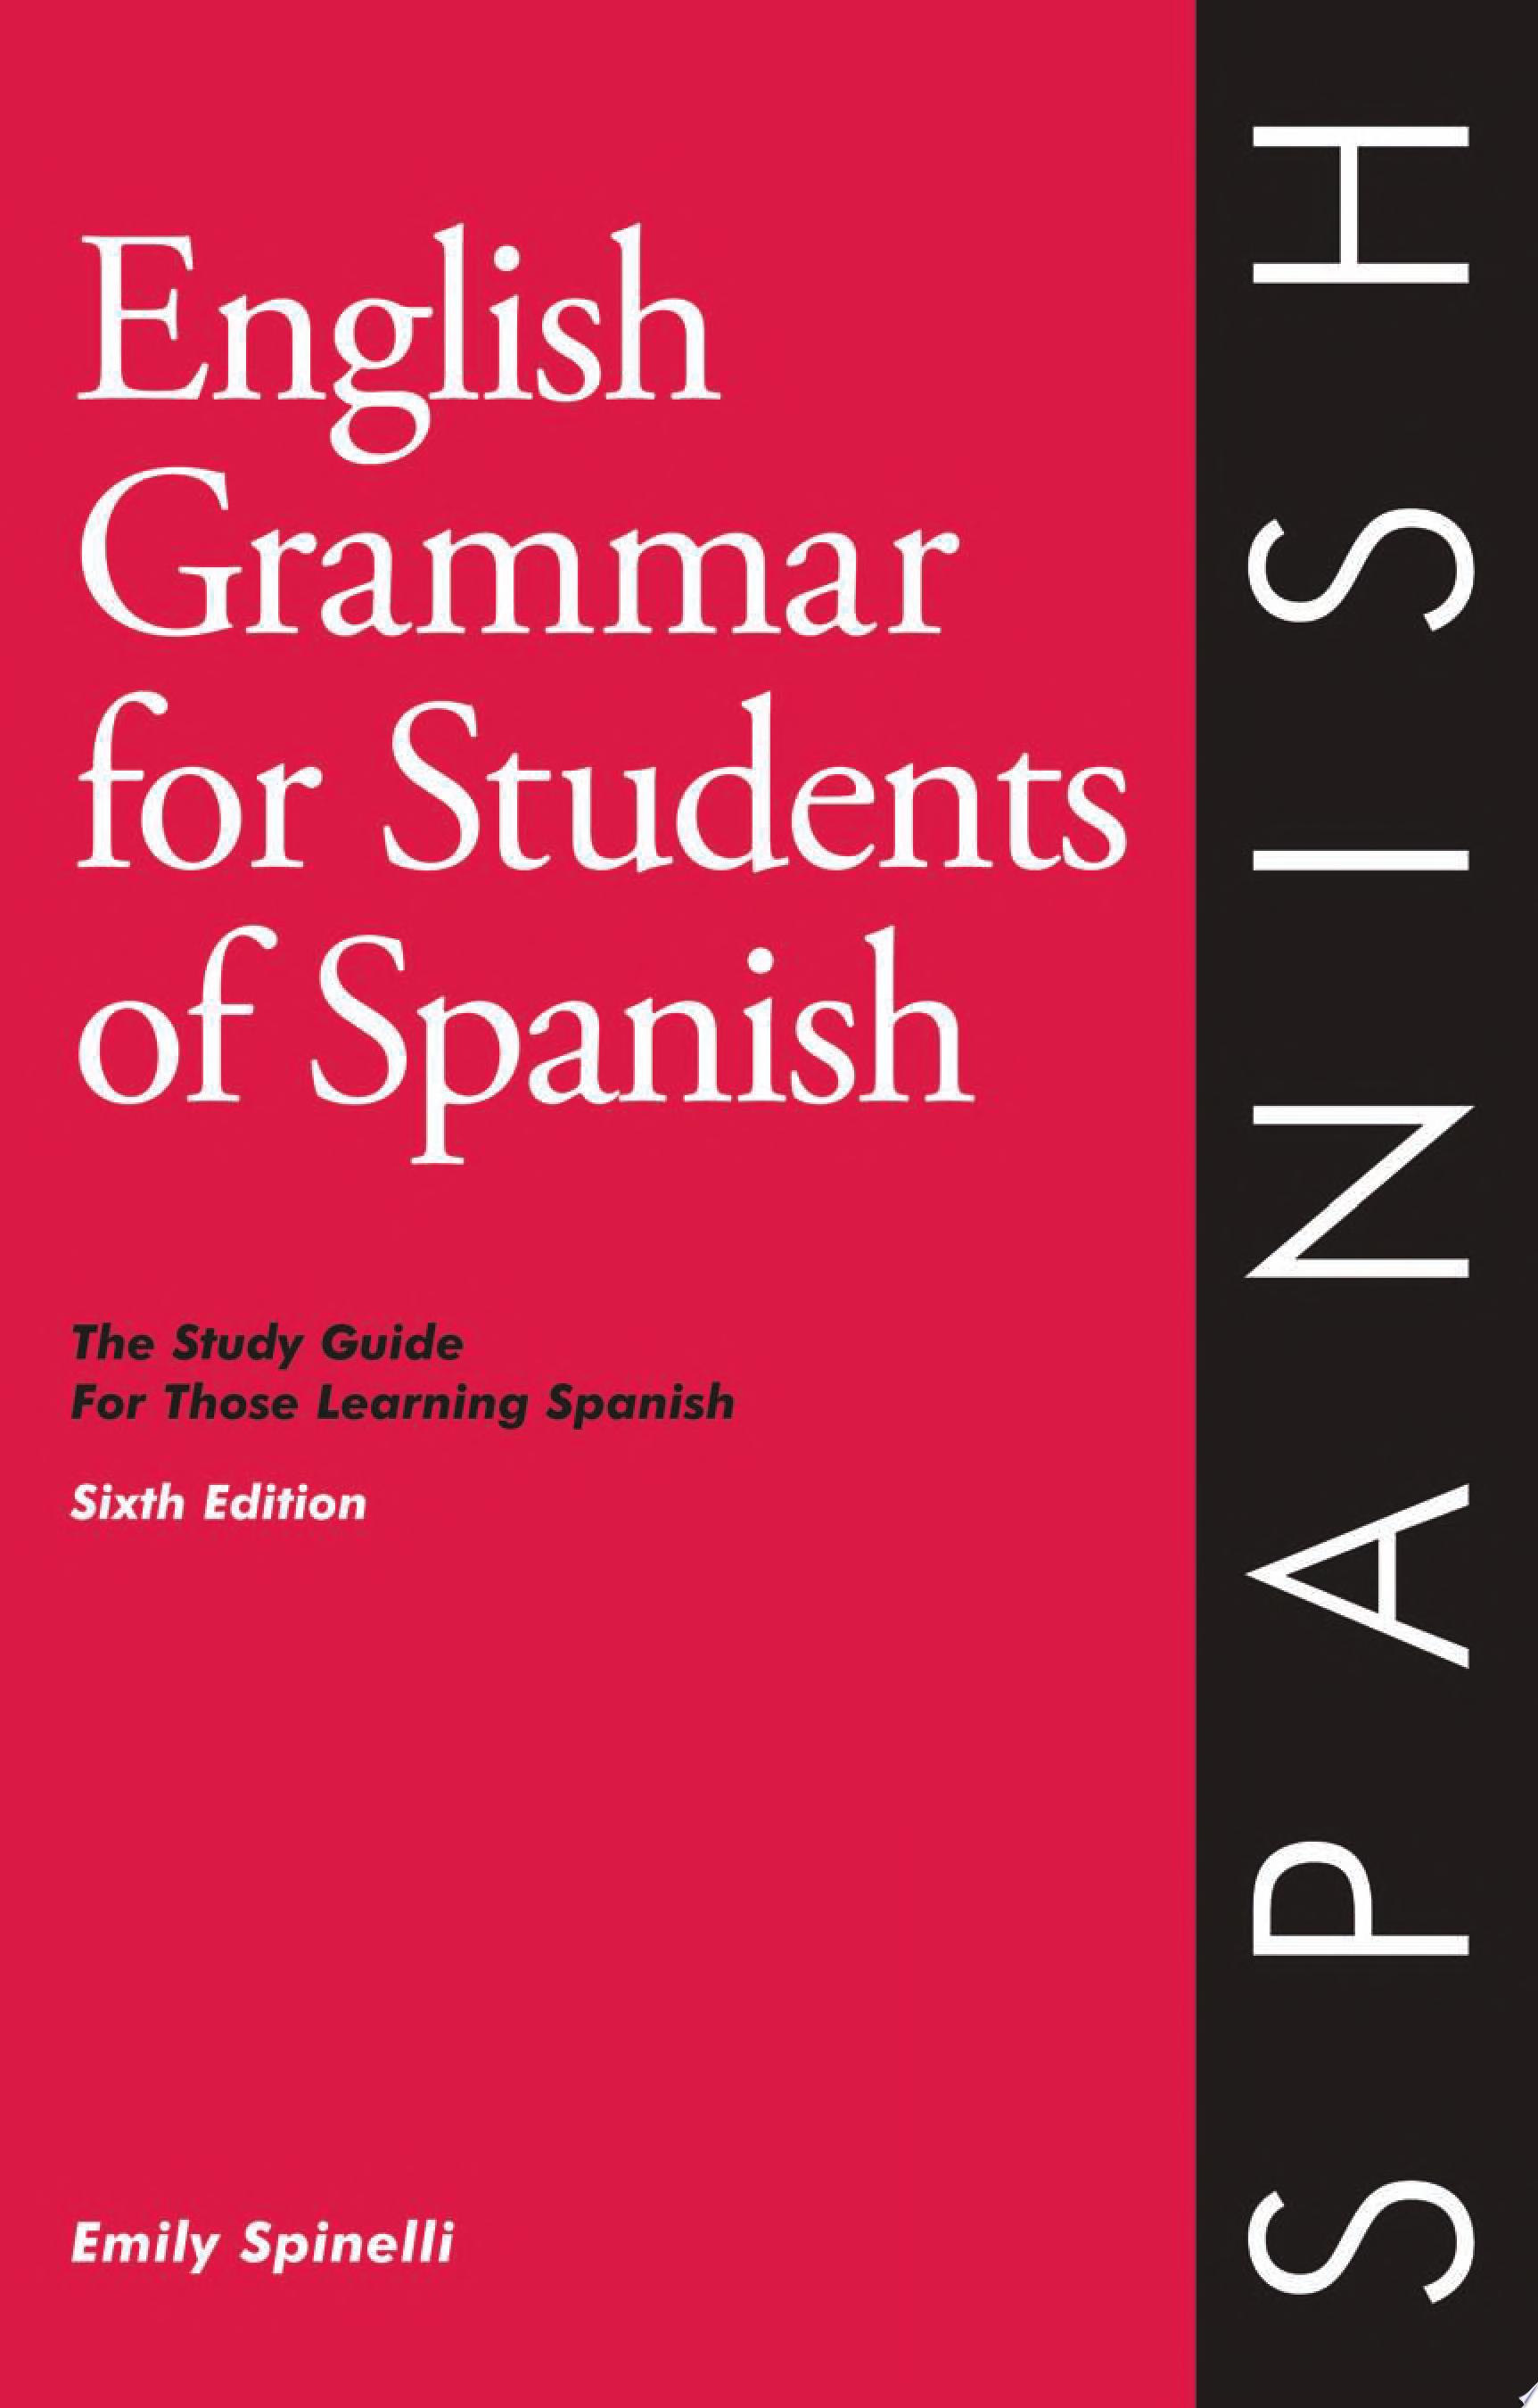 English Grammar for Students of Spanish